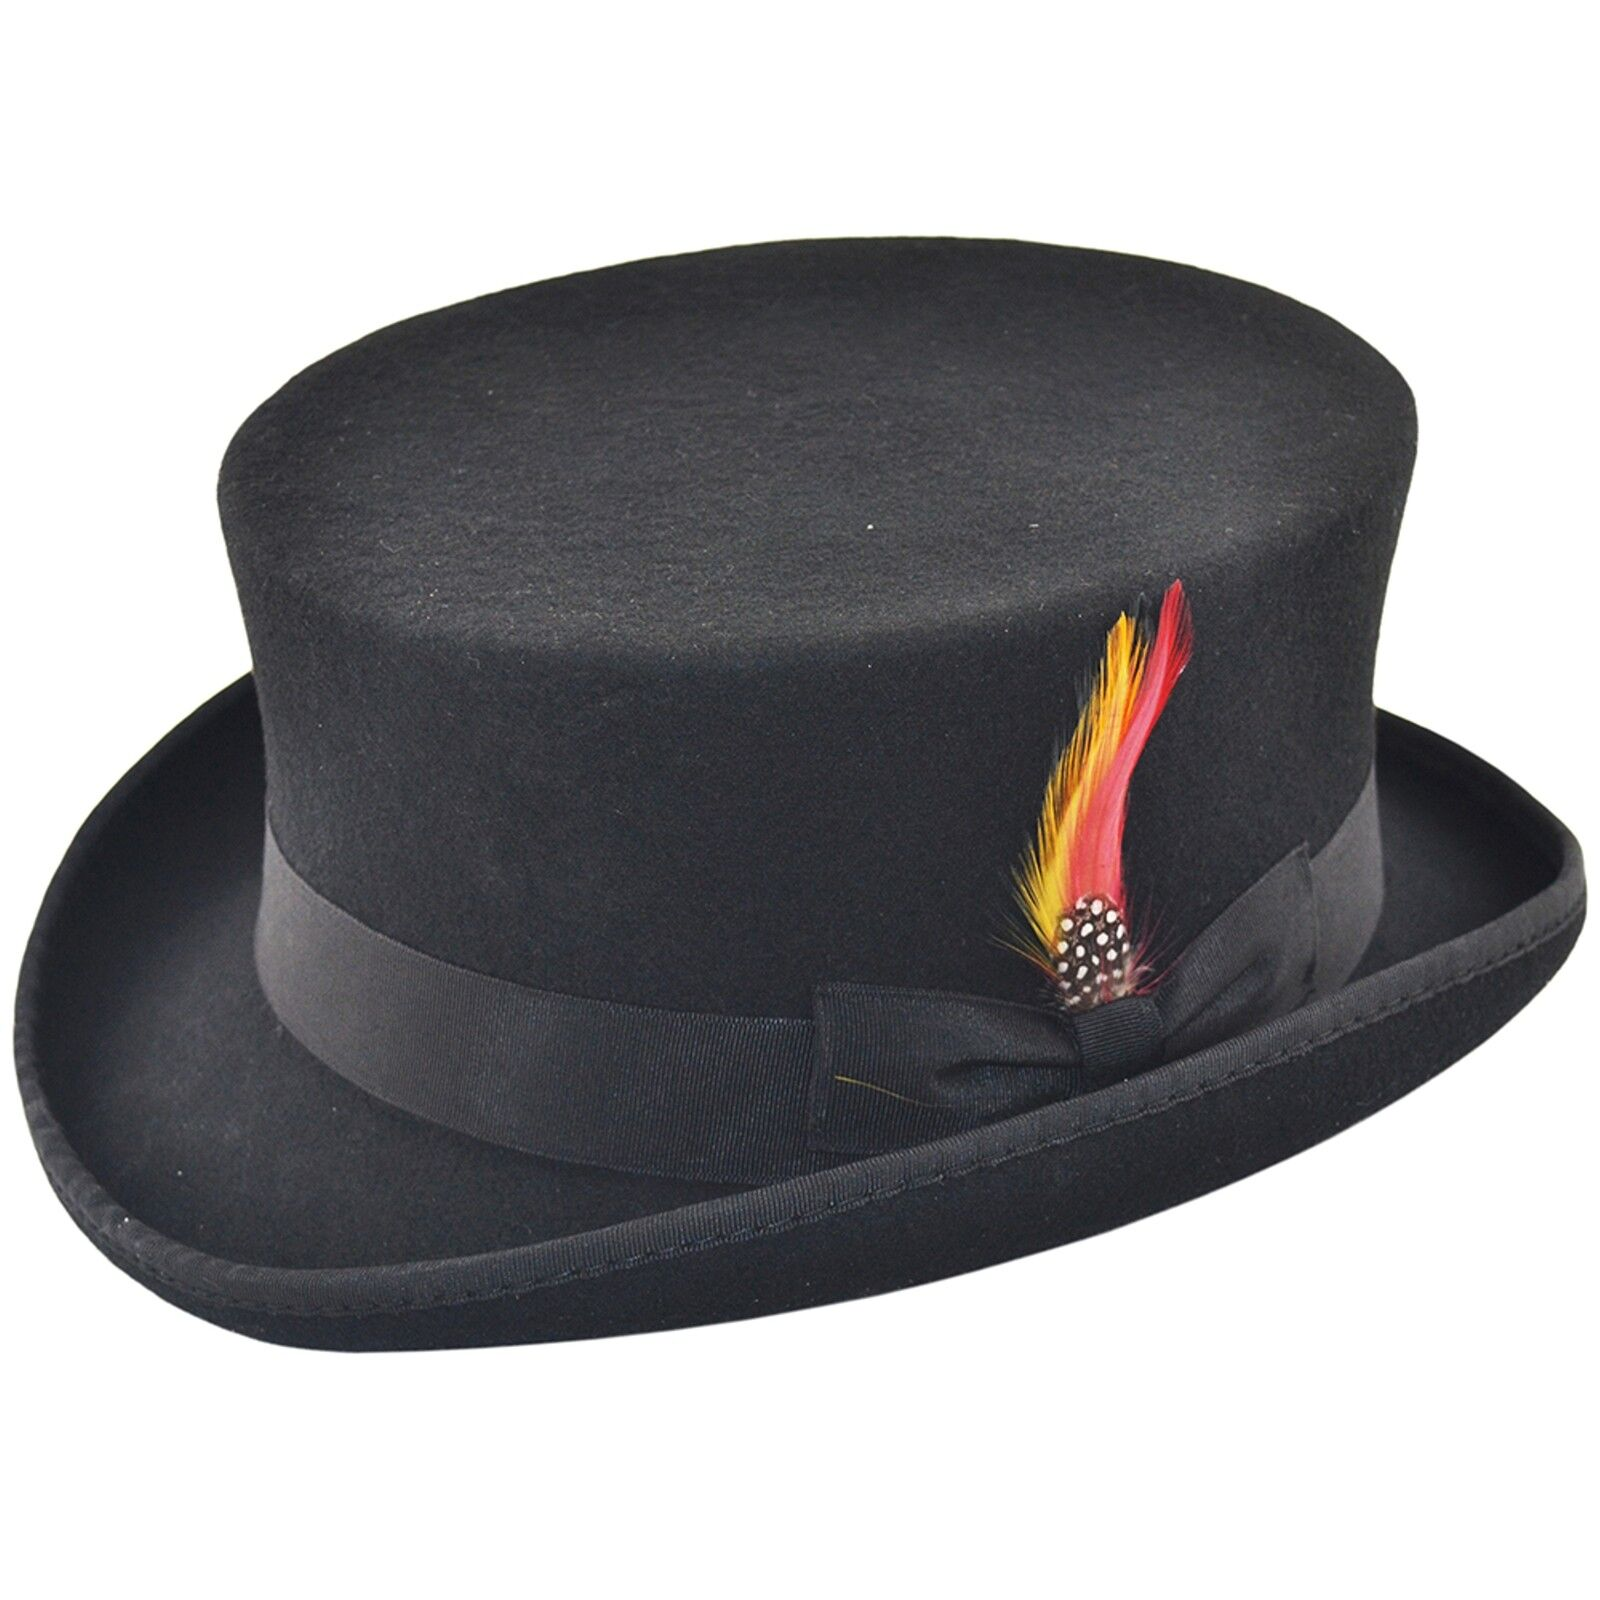 VIZ-UK WEAR Gents Black 100/% Wool Satin Lined Wedding Event Top Hat with Removable Feather